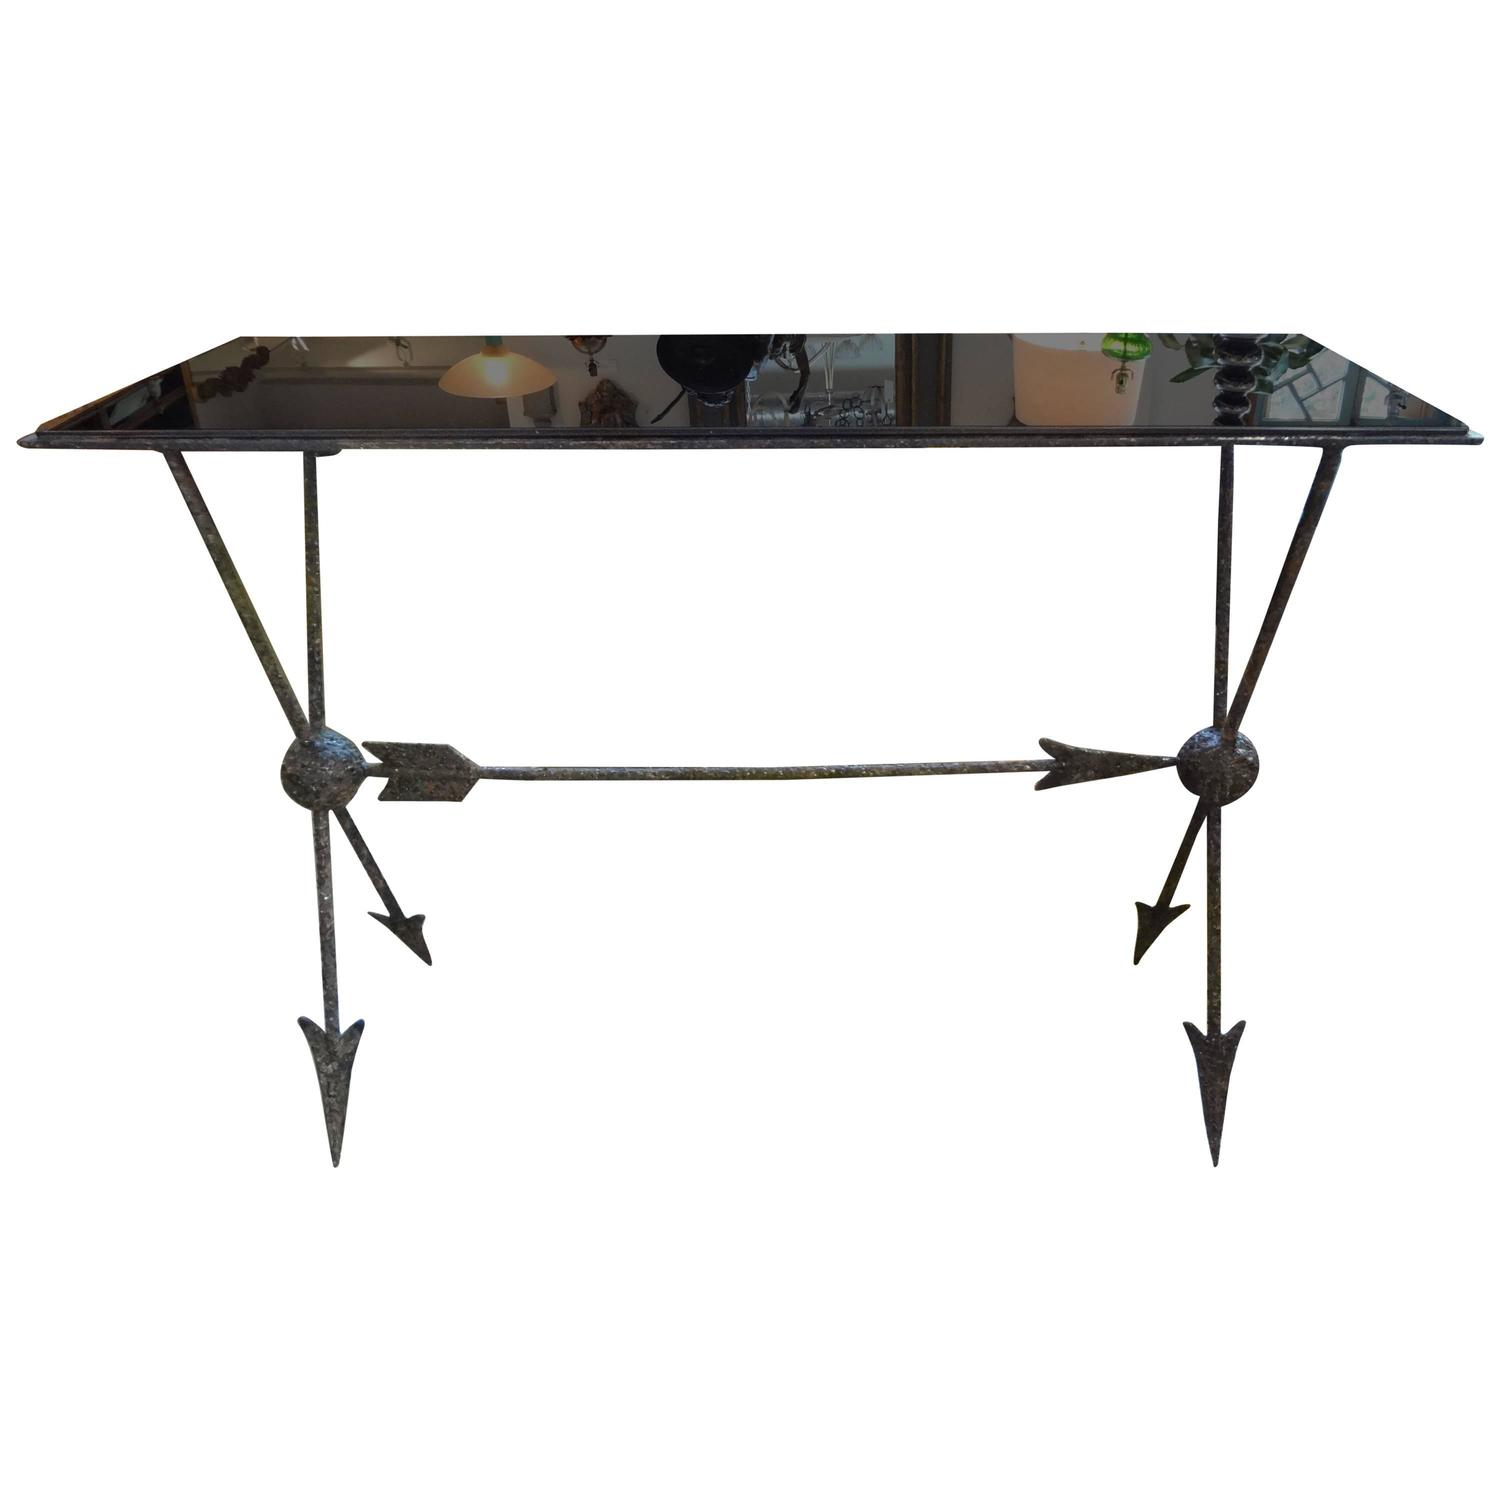 Italian gio ponti inspired wrought iron console table with for Metal console tables glass top